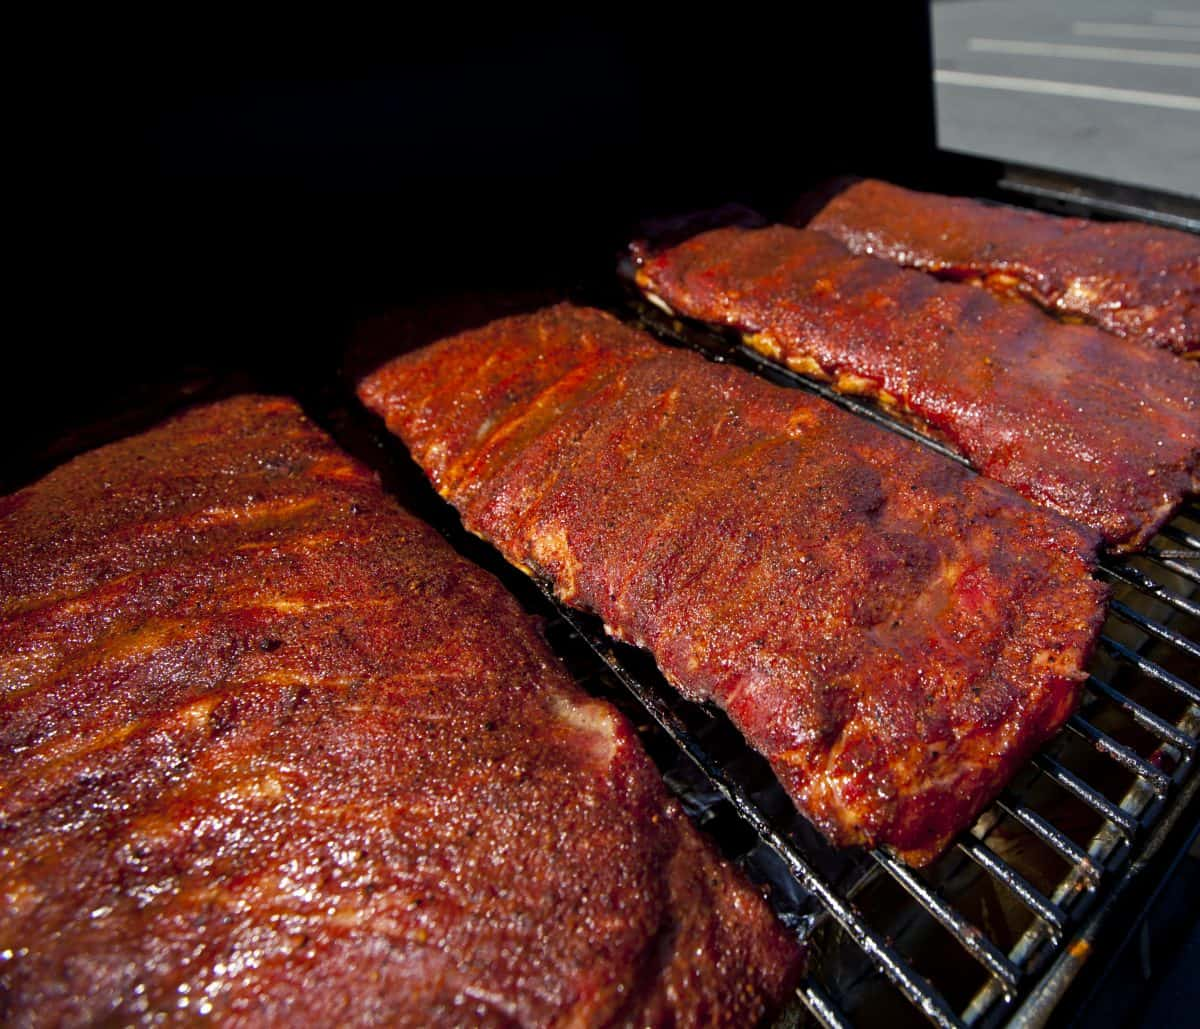 Racks of spare ribs in a smoker